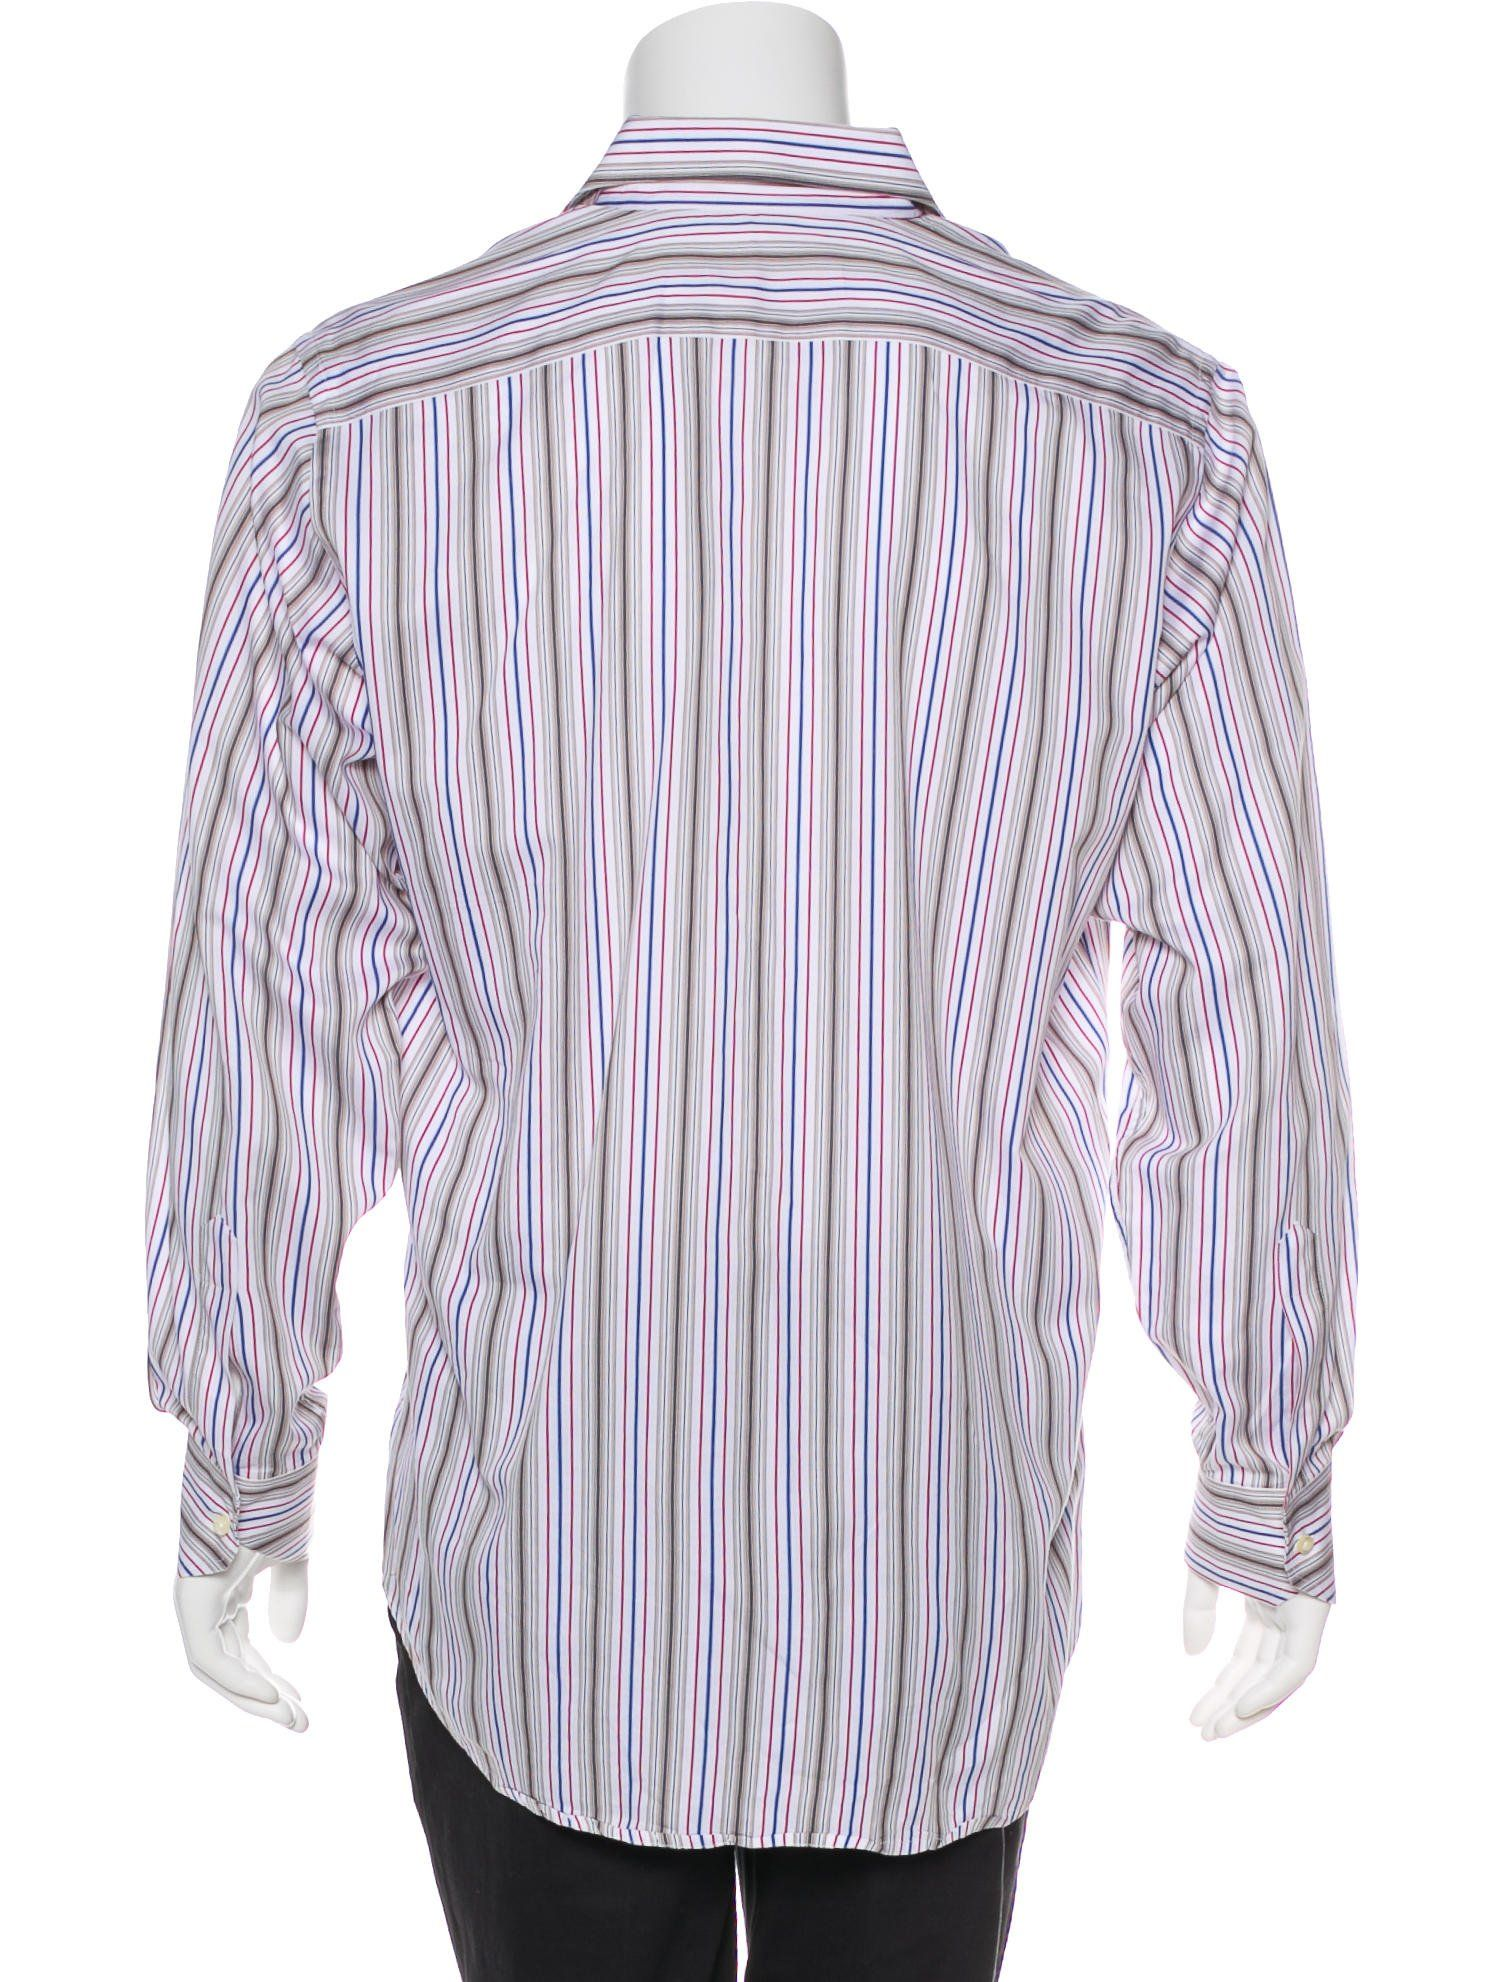 Men S White And Multicolor Etro Striped Dress Shirt With Point Collar One Button Cuffs And Button Closures At Front Etro Etro Shirts Striped Dress Shirt Dress [ 1982 x 1502 Pixel ]